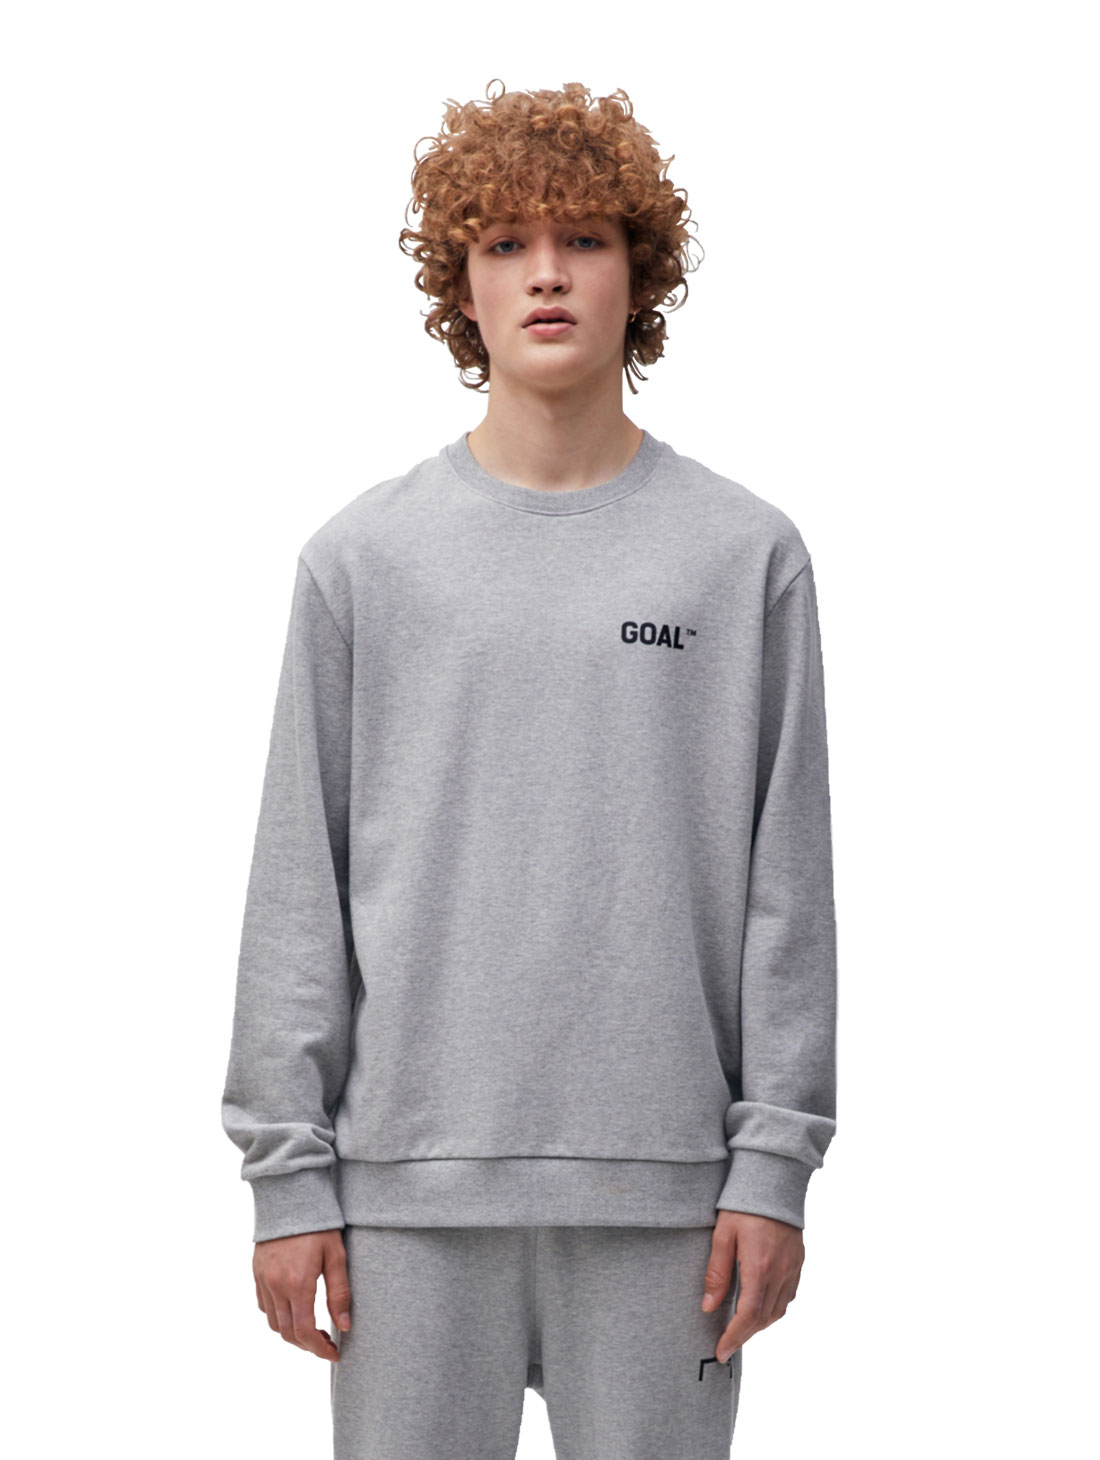 BACK LOGO SWEATSHIRT - GREY